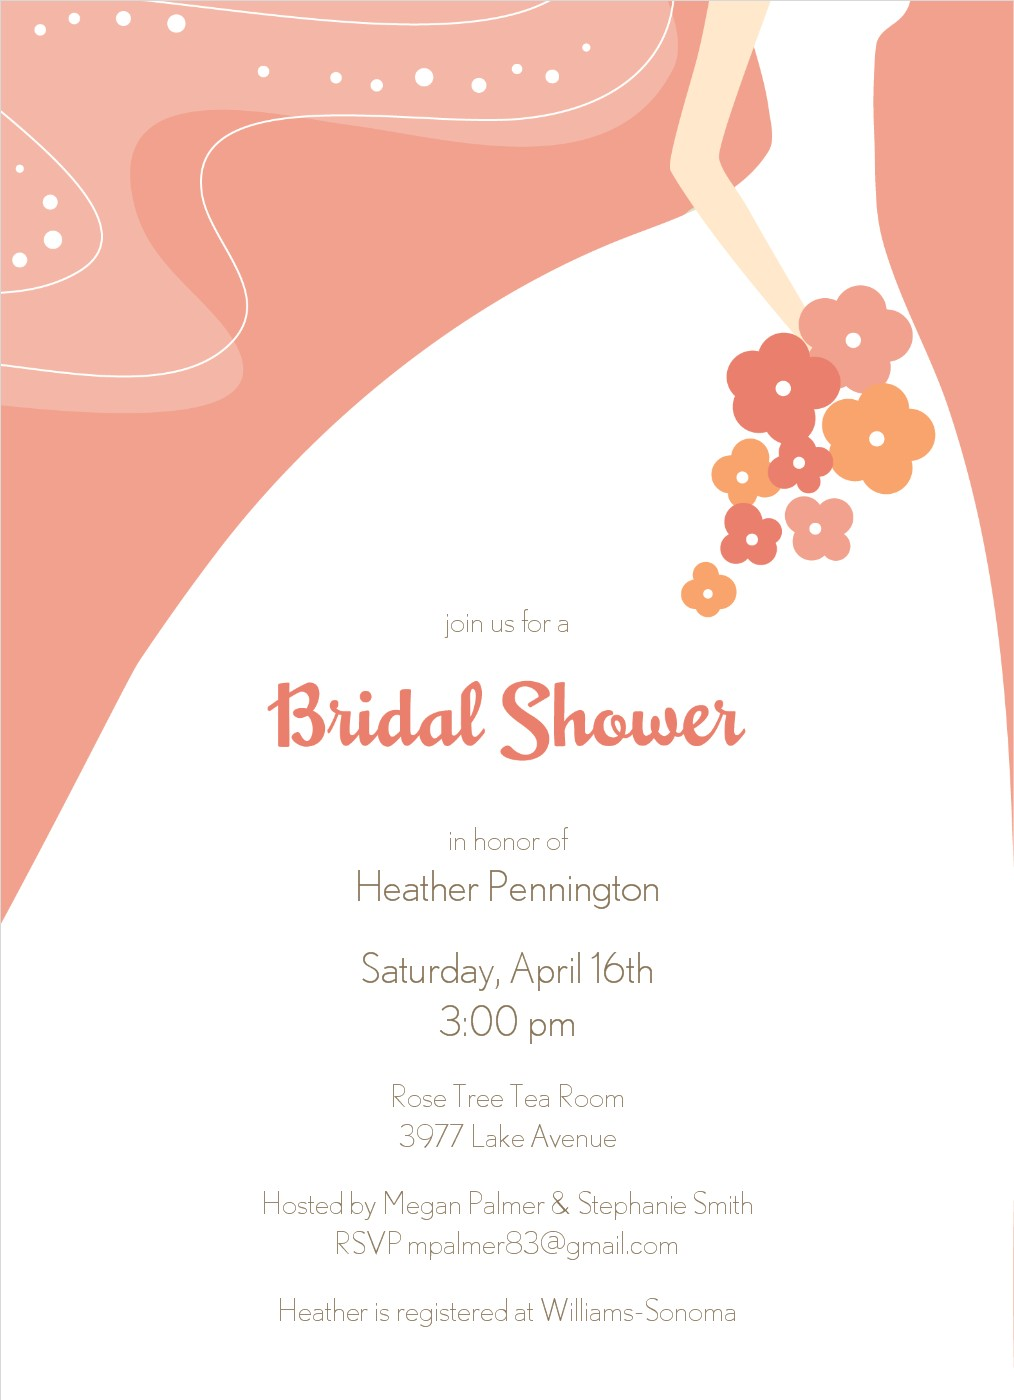 Dress clipart bridal shower Bridal art Bridal collection clipart